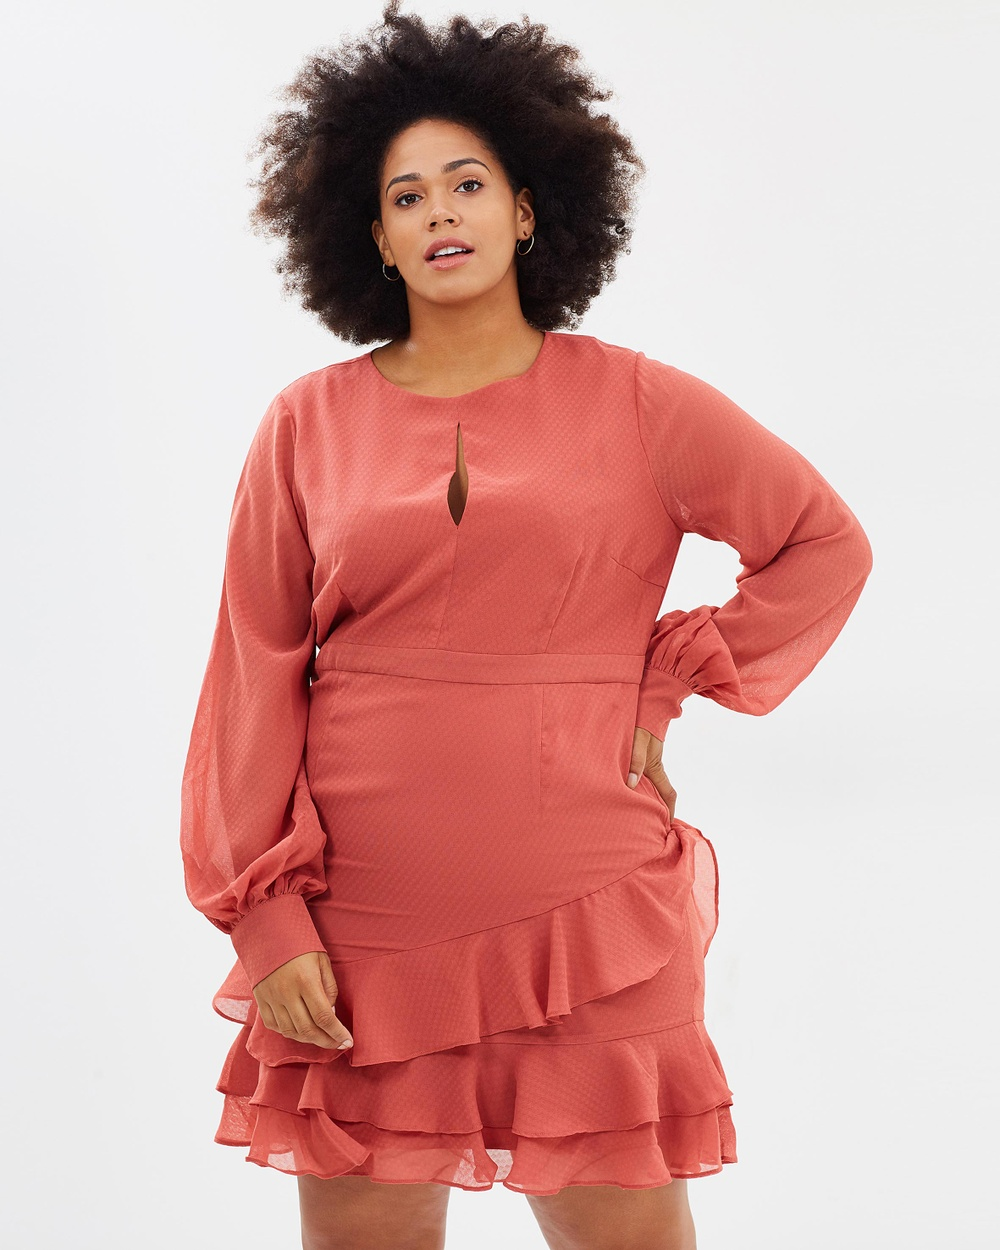 Cooper St CS CURVY Briar Rose Long Sleeve Dress Dresses Cinnamon Red CS CURVY Briar Rose Long Sleeve Dress